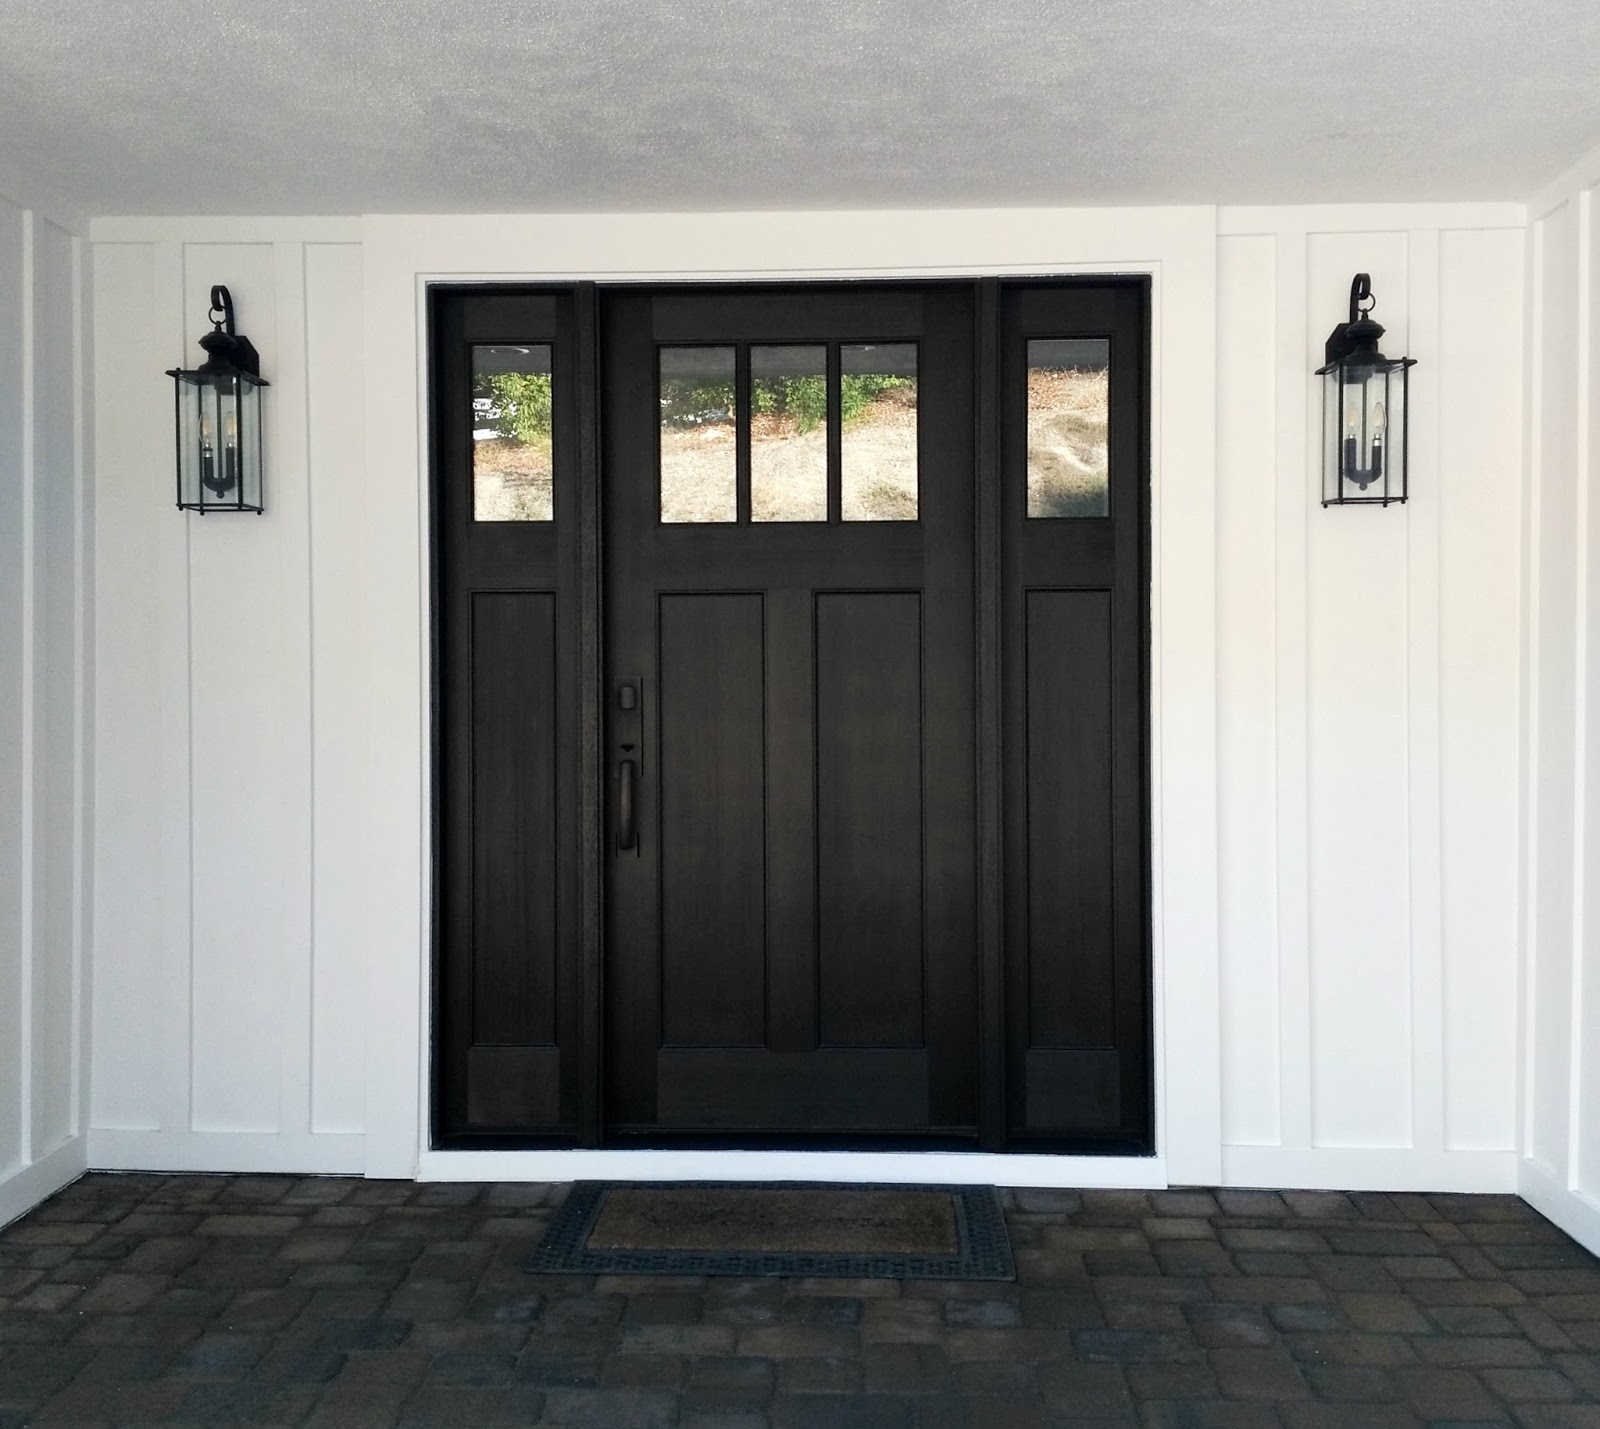 andersen door emtek hardware sidelites ranch home improvement renovation remodeling cad interiors